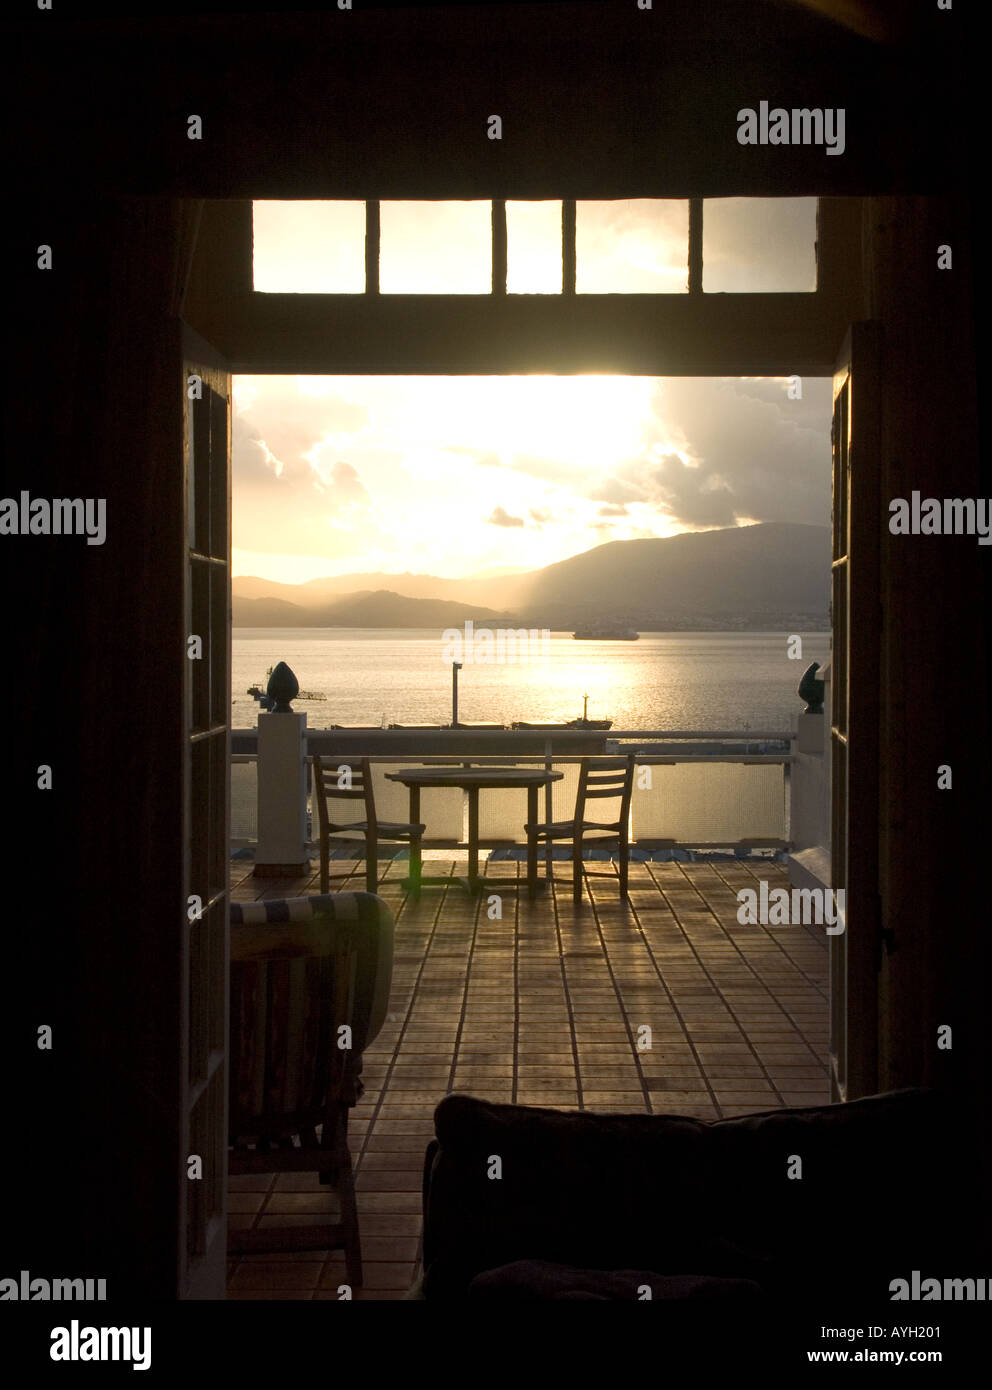 Dusk over the Bay of Gibraltar through hotel patio doors - Stock Image